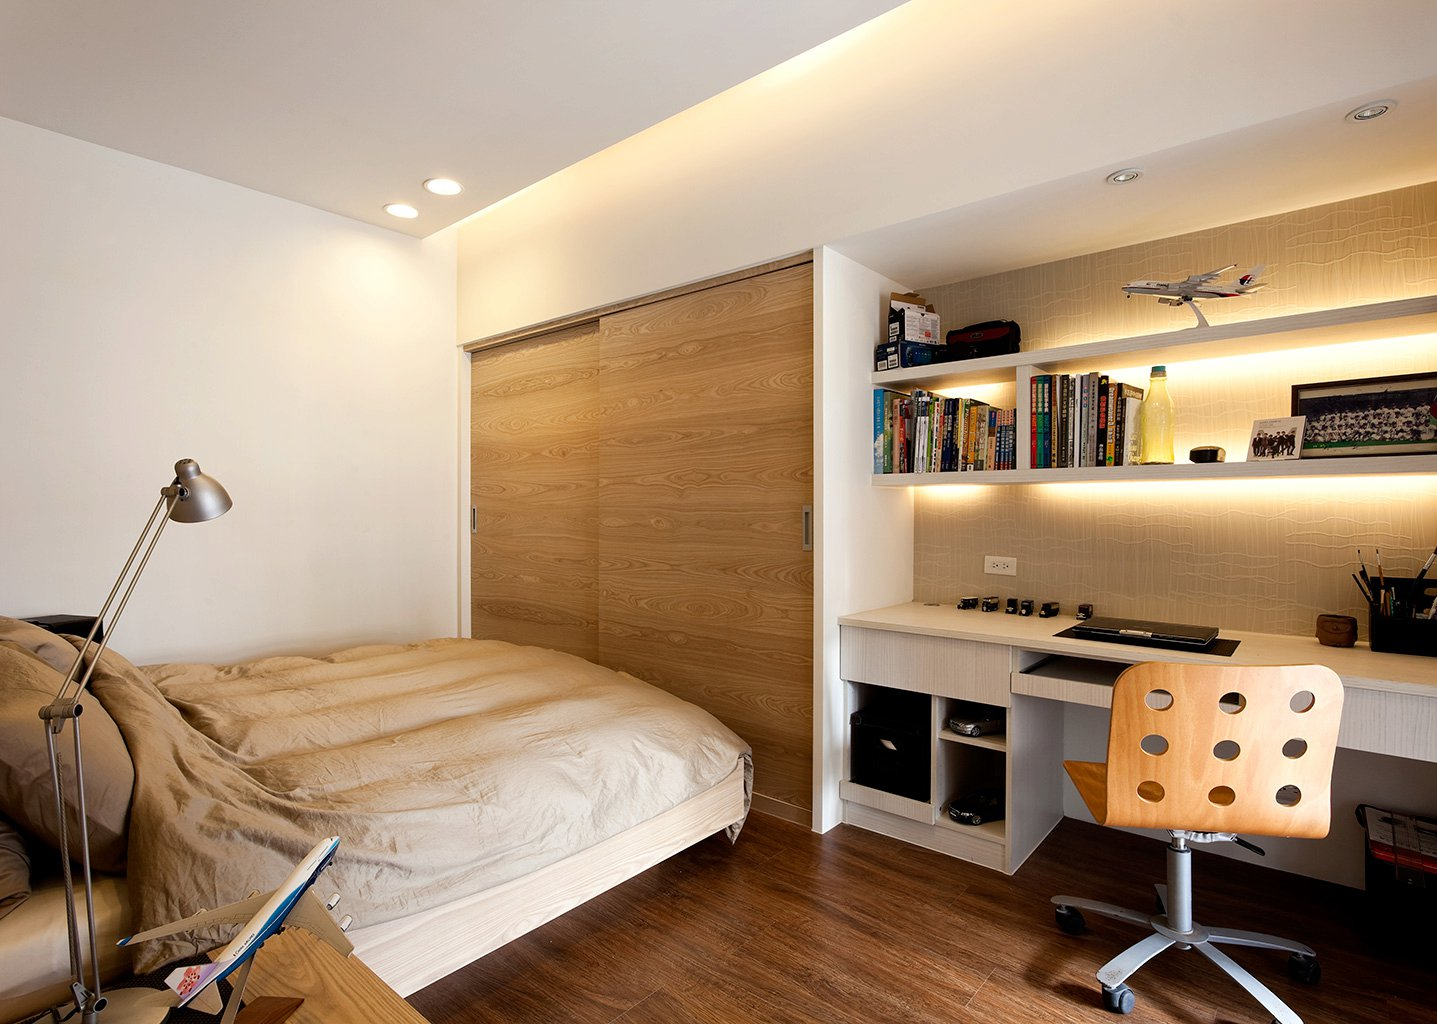 compact bedroom design. Like Architecture  Interior Design Follow Us Compact bedroom design Ideas